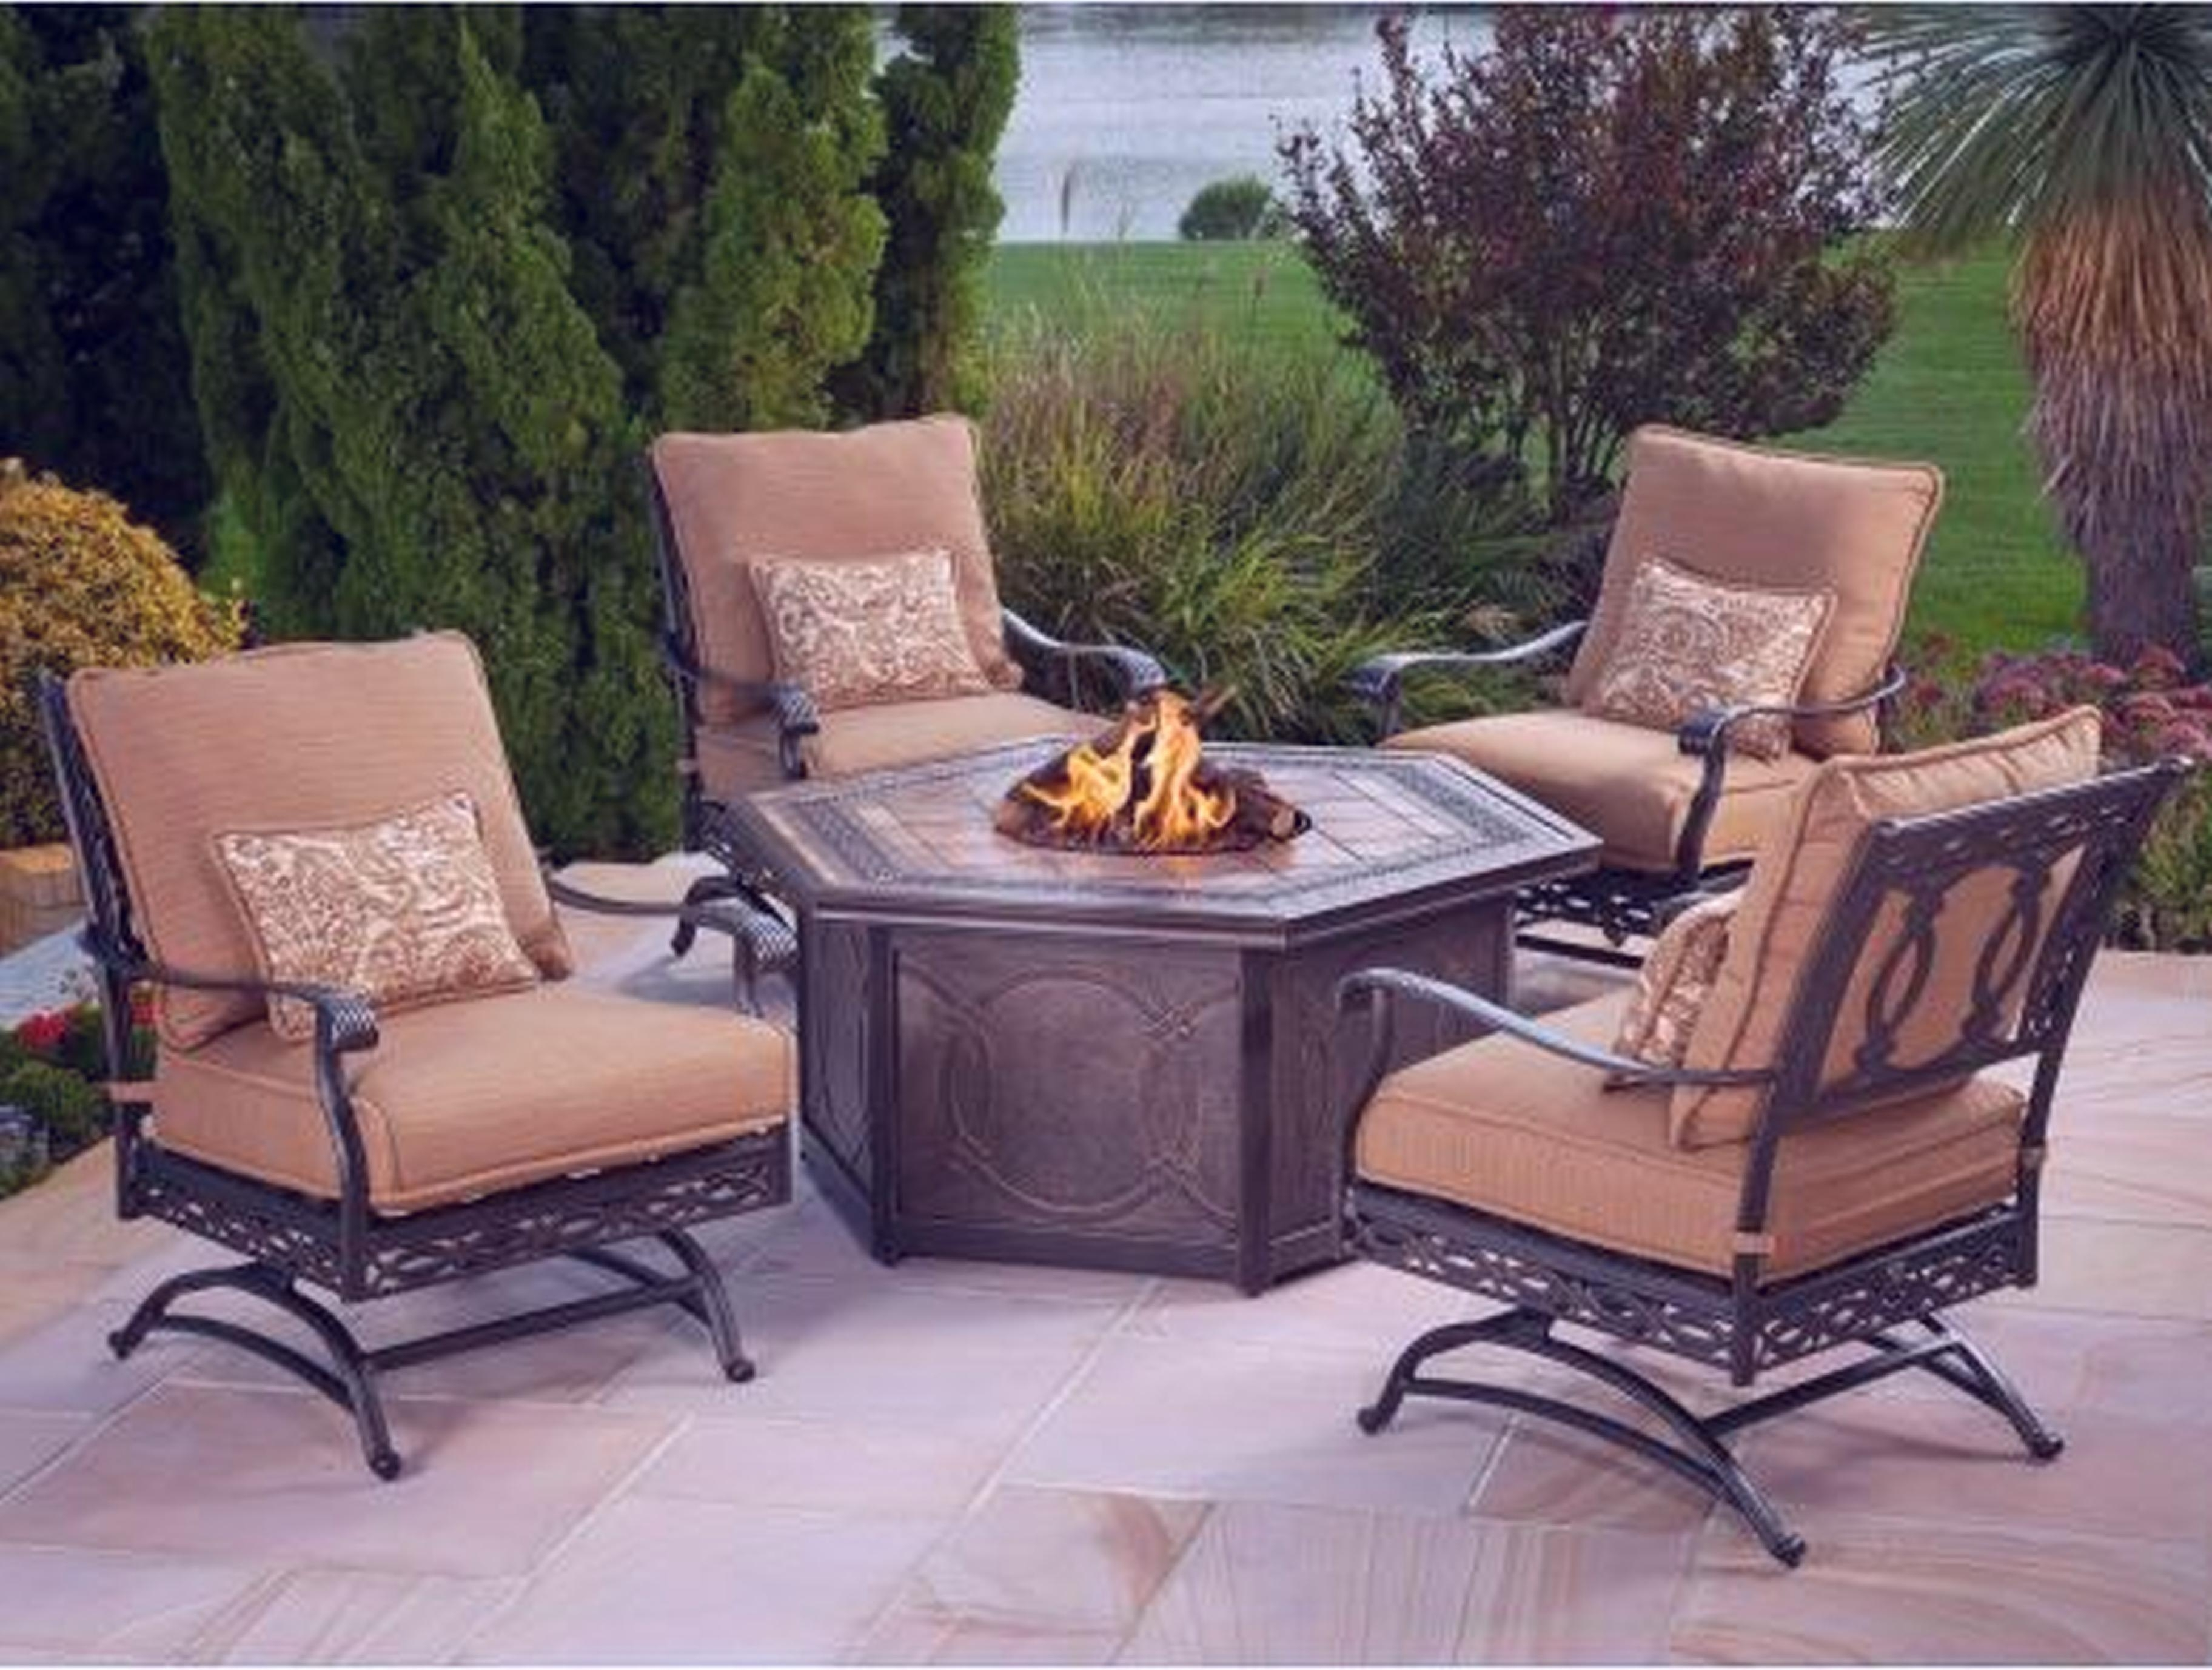 Widely Used Target Patio Furniture Conversation Sets Pertaining To Patio Conversation Sets Clearance Patio Conversation Sets Under  (View 20 of 20)